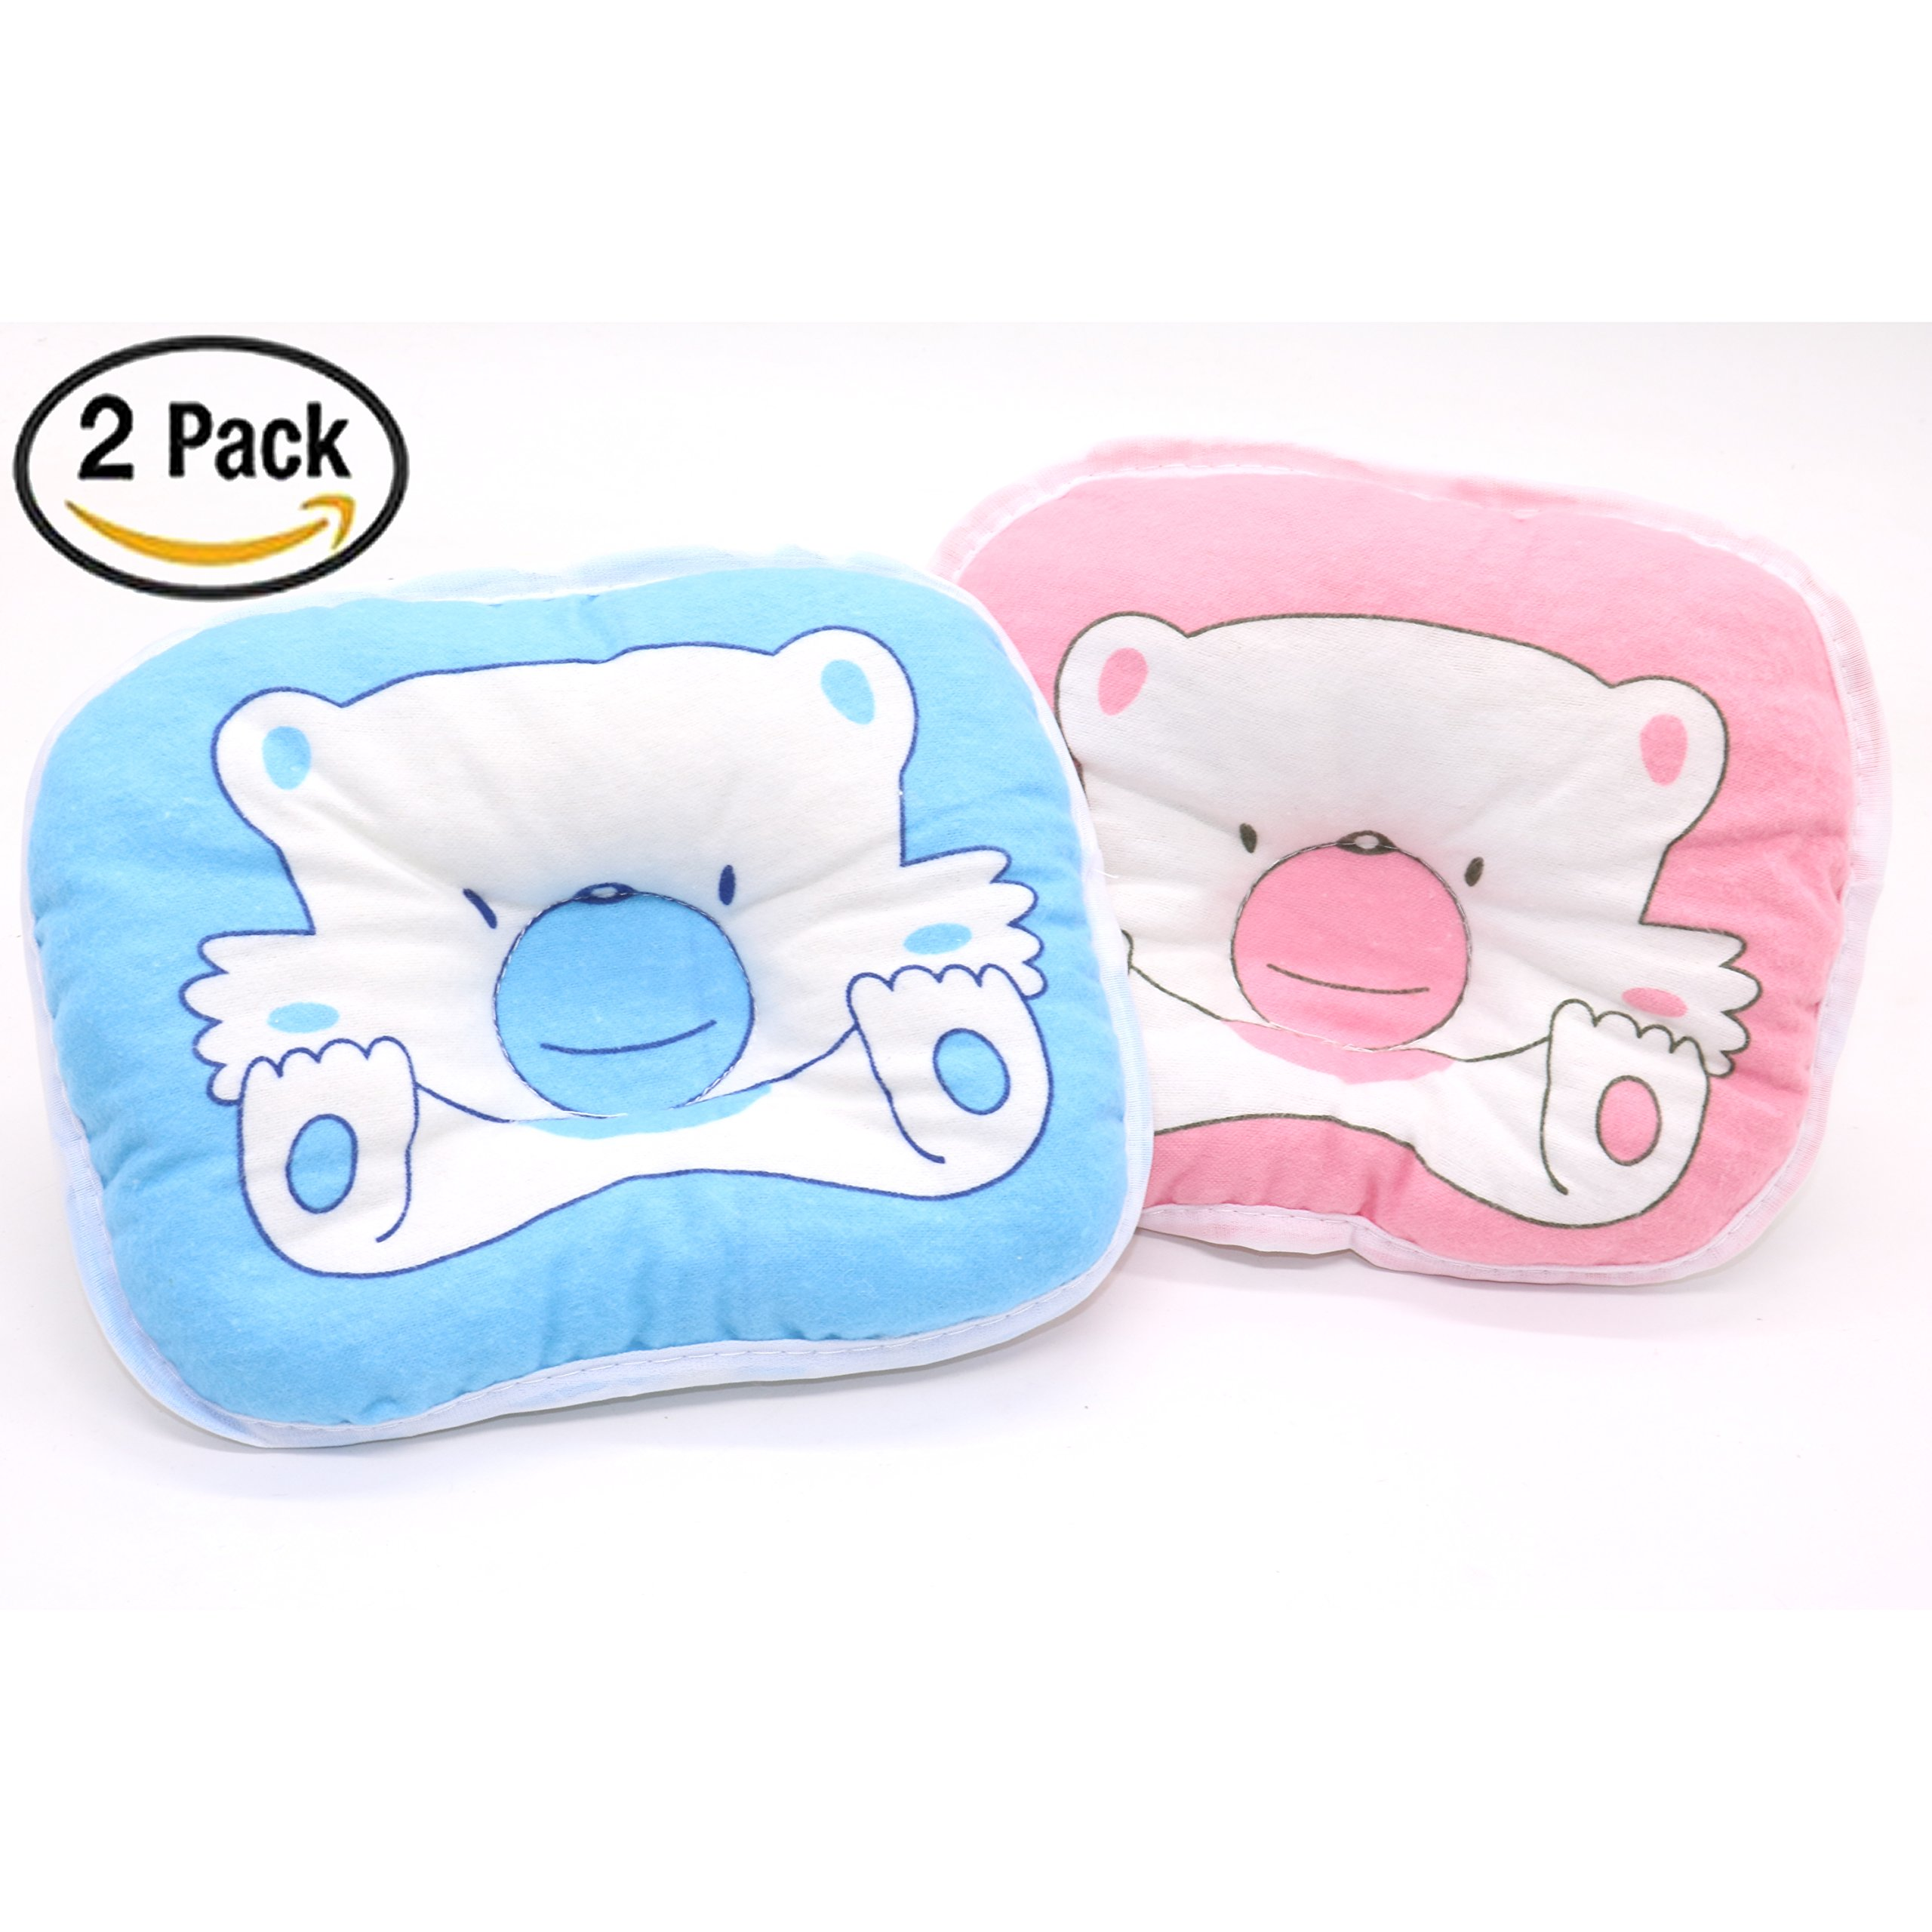 2 Pack Baby Pillow Cute Cartoon Bear Baby Anti-roll Pillow baby anti-bias headrest baby pillow, Pink and Blue